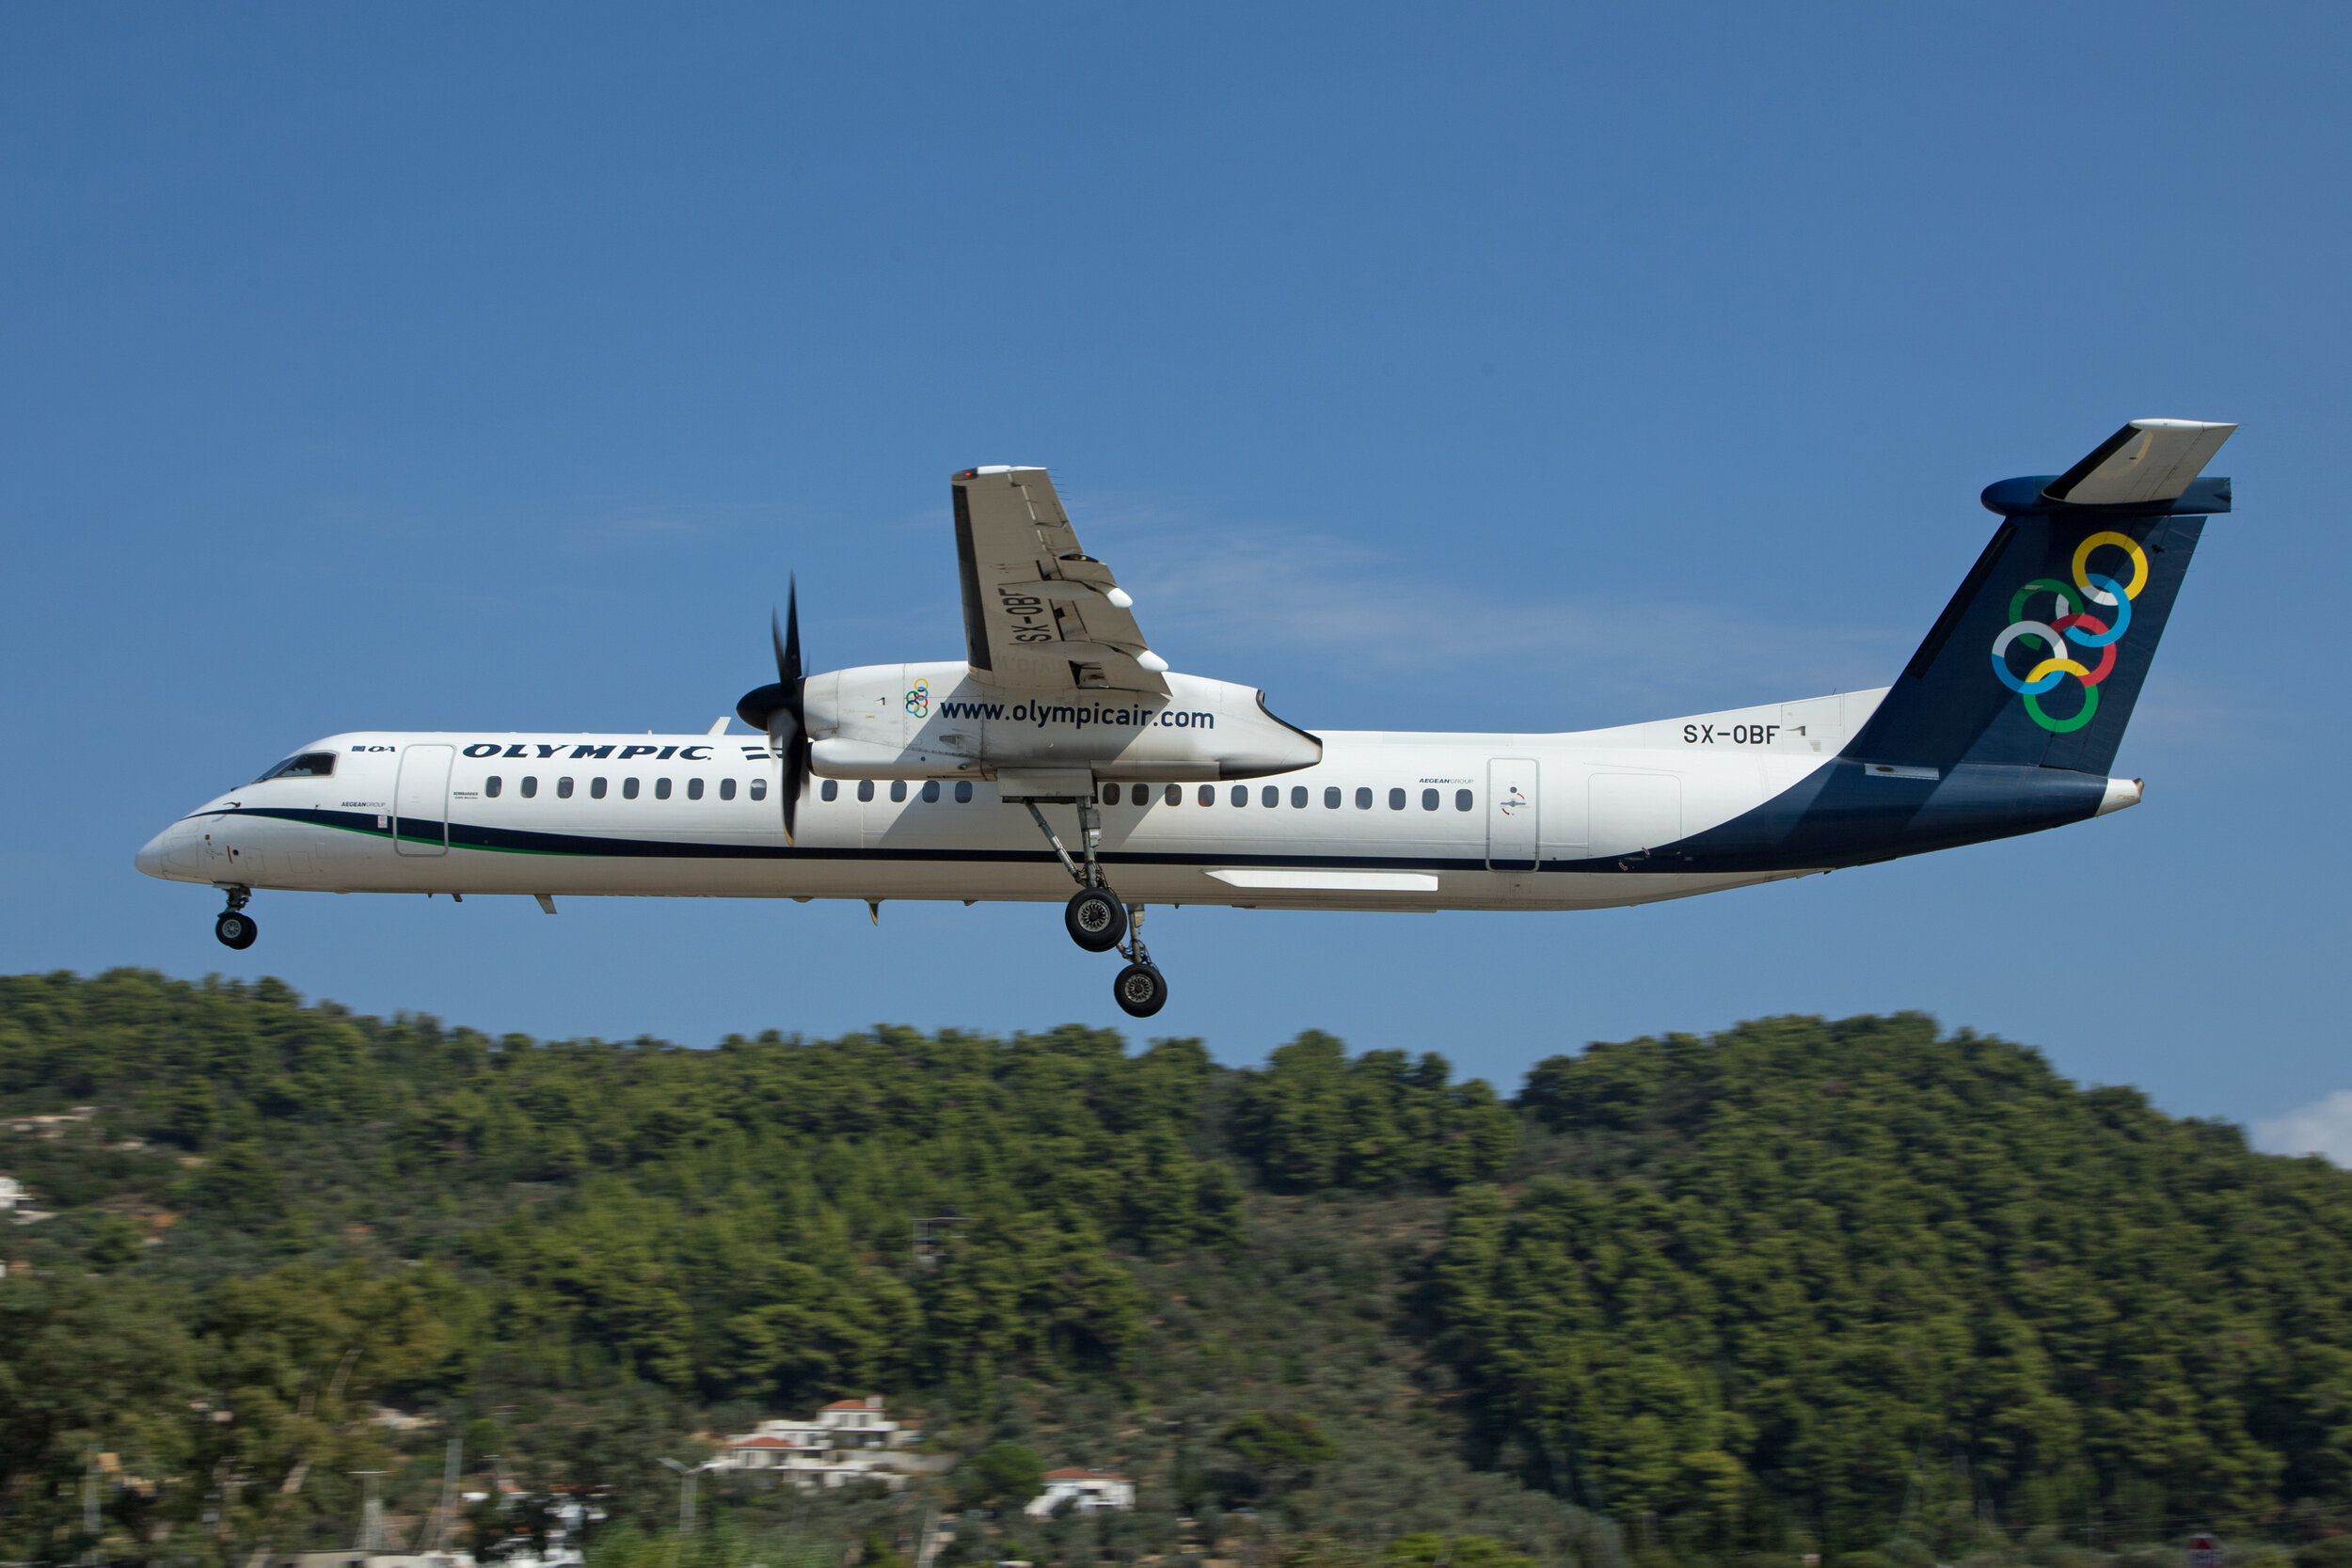 During the Summer months Olympic operate a late afternoon Dash 8 service from Athens.Peter H